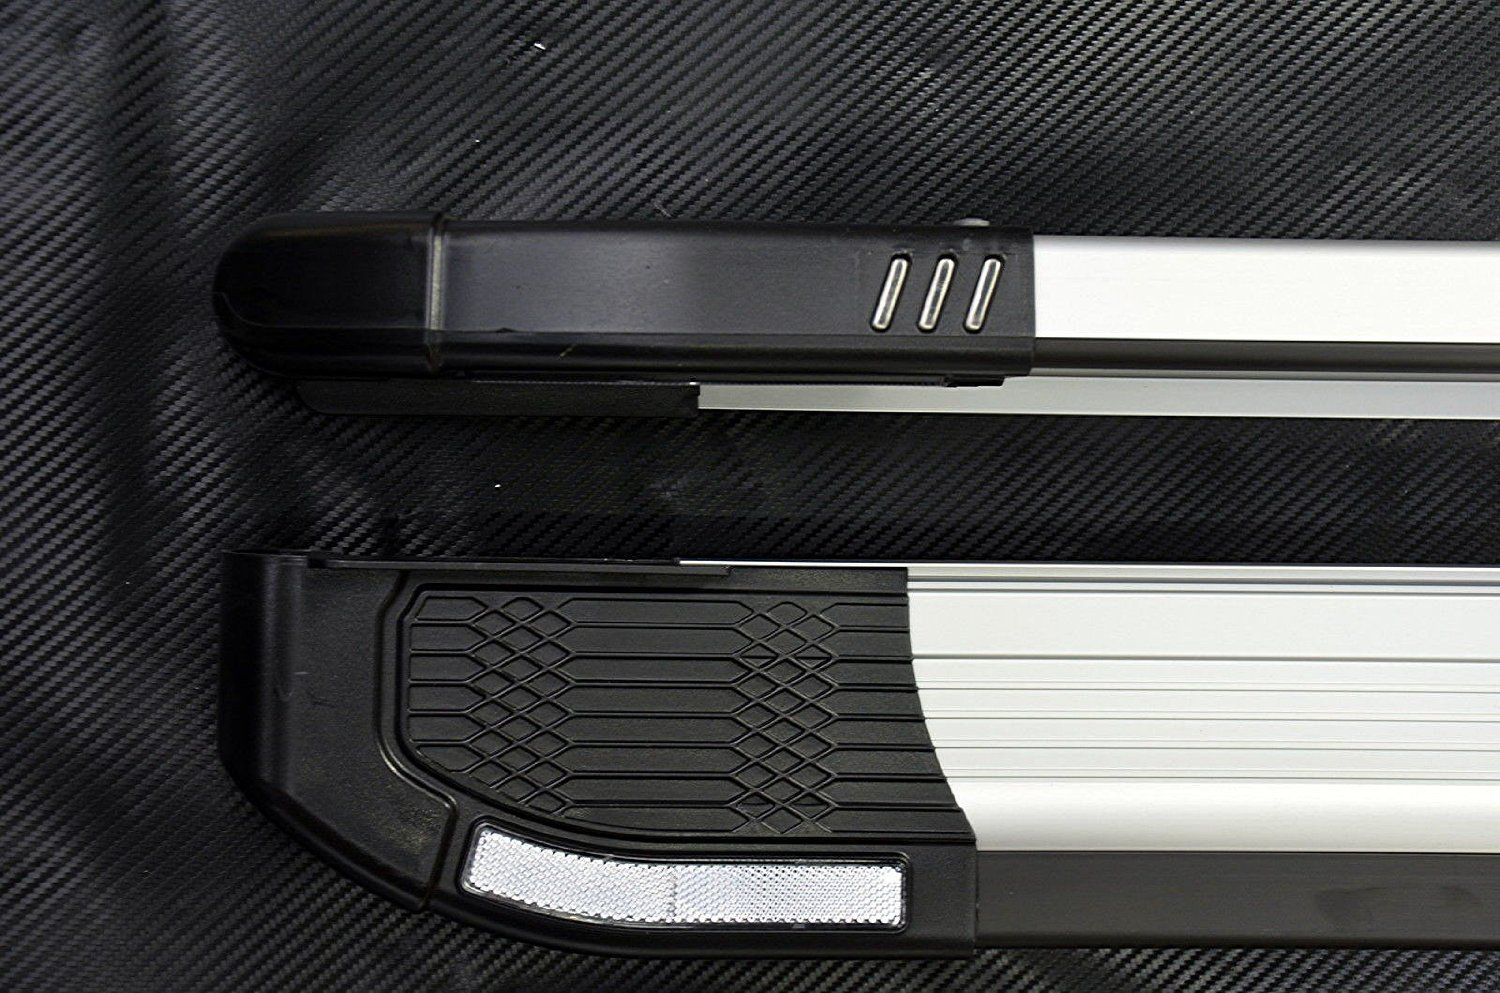 Citroen Nemo Running Board Step Bar Side Steps Bar Board Accessory 2008 Onward: Amazon.co.uk: Car & Motorbike